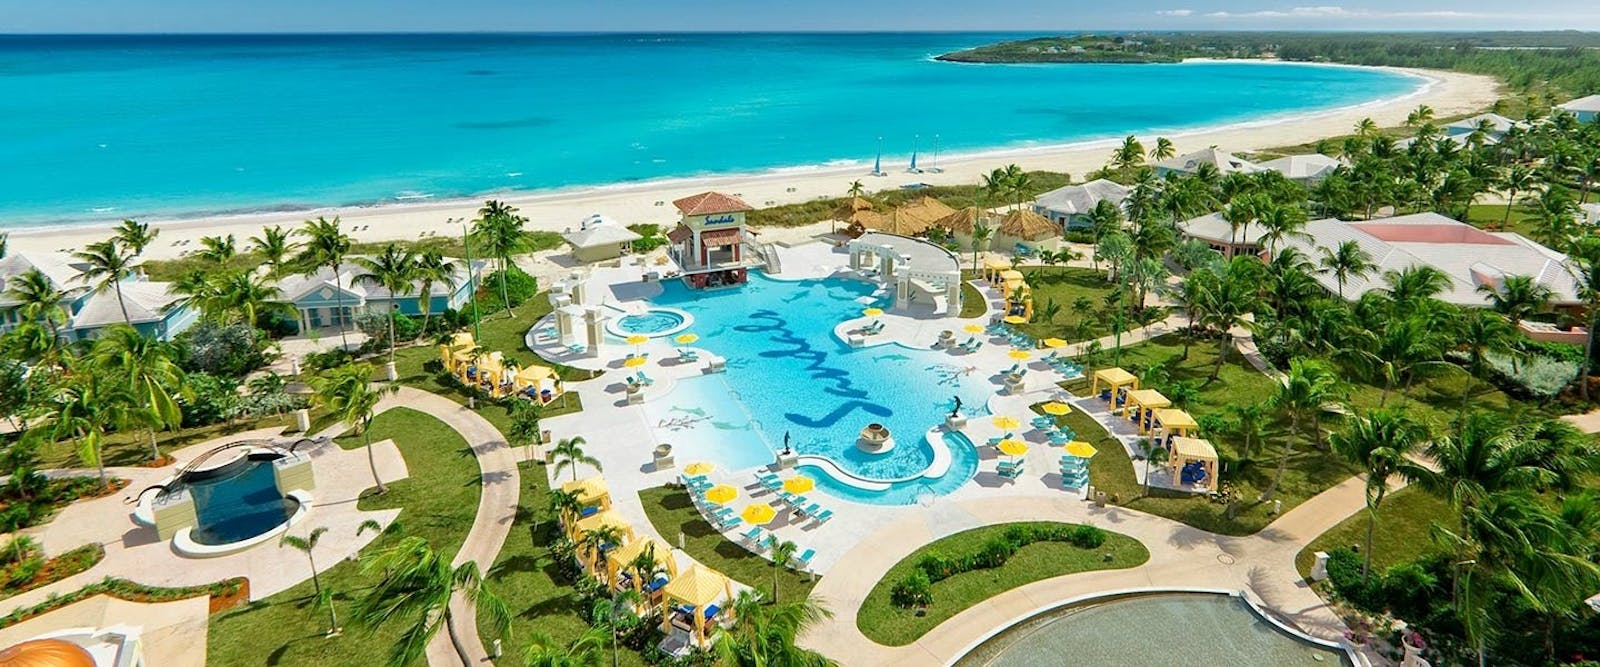 Swimming Pool at Sandals Emerald Bay Golf, Tennis & Spa Resort, Bahamas, Caribbean